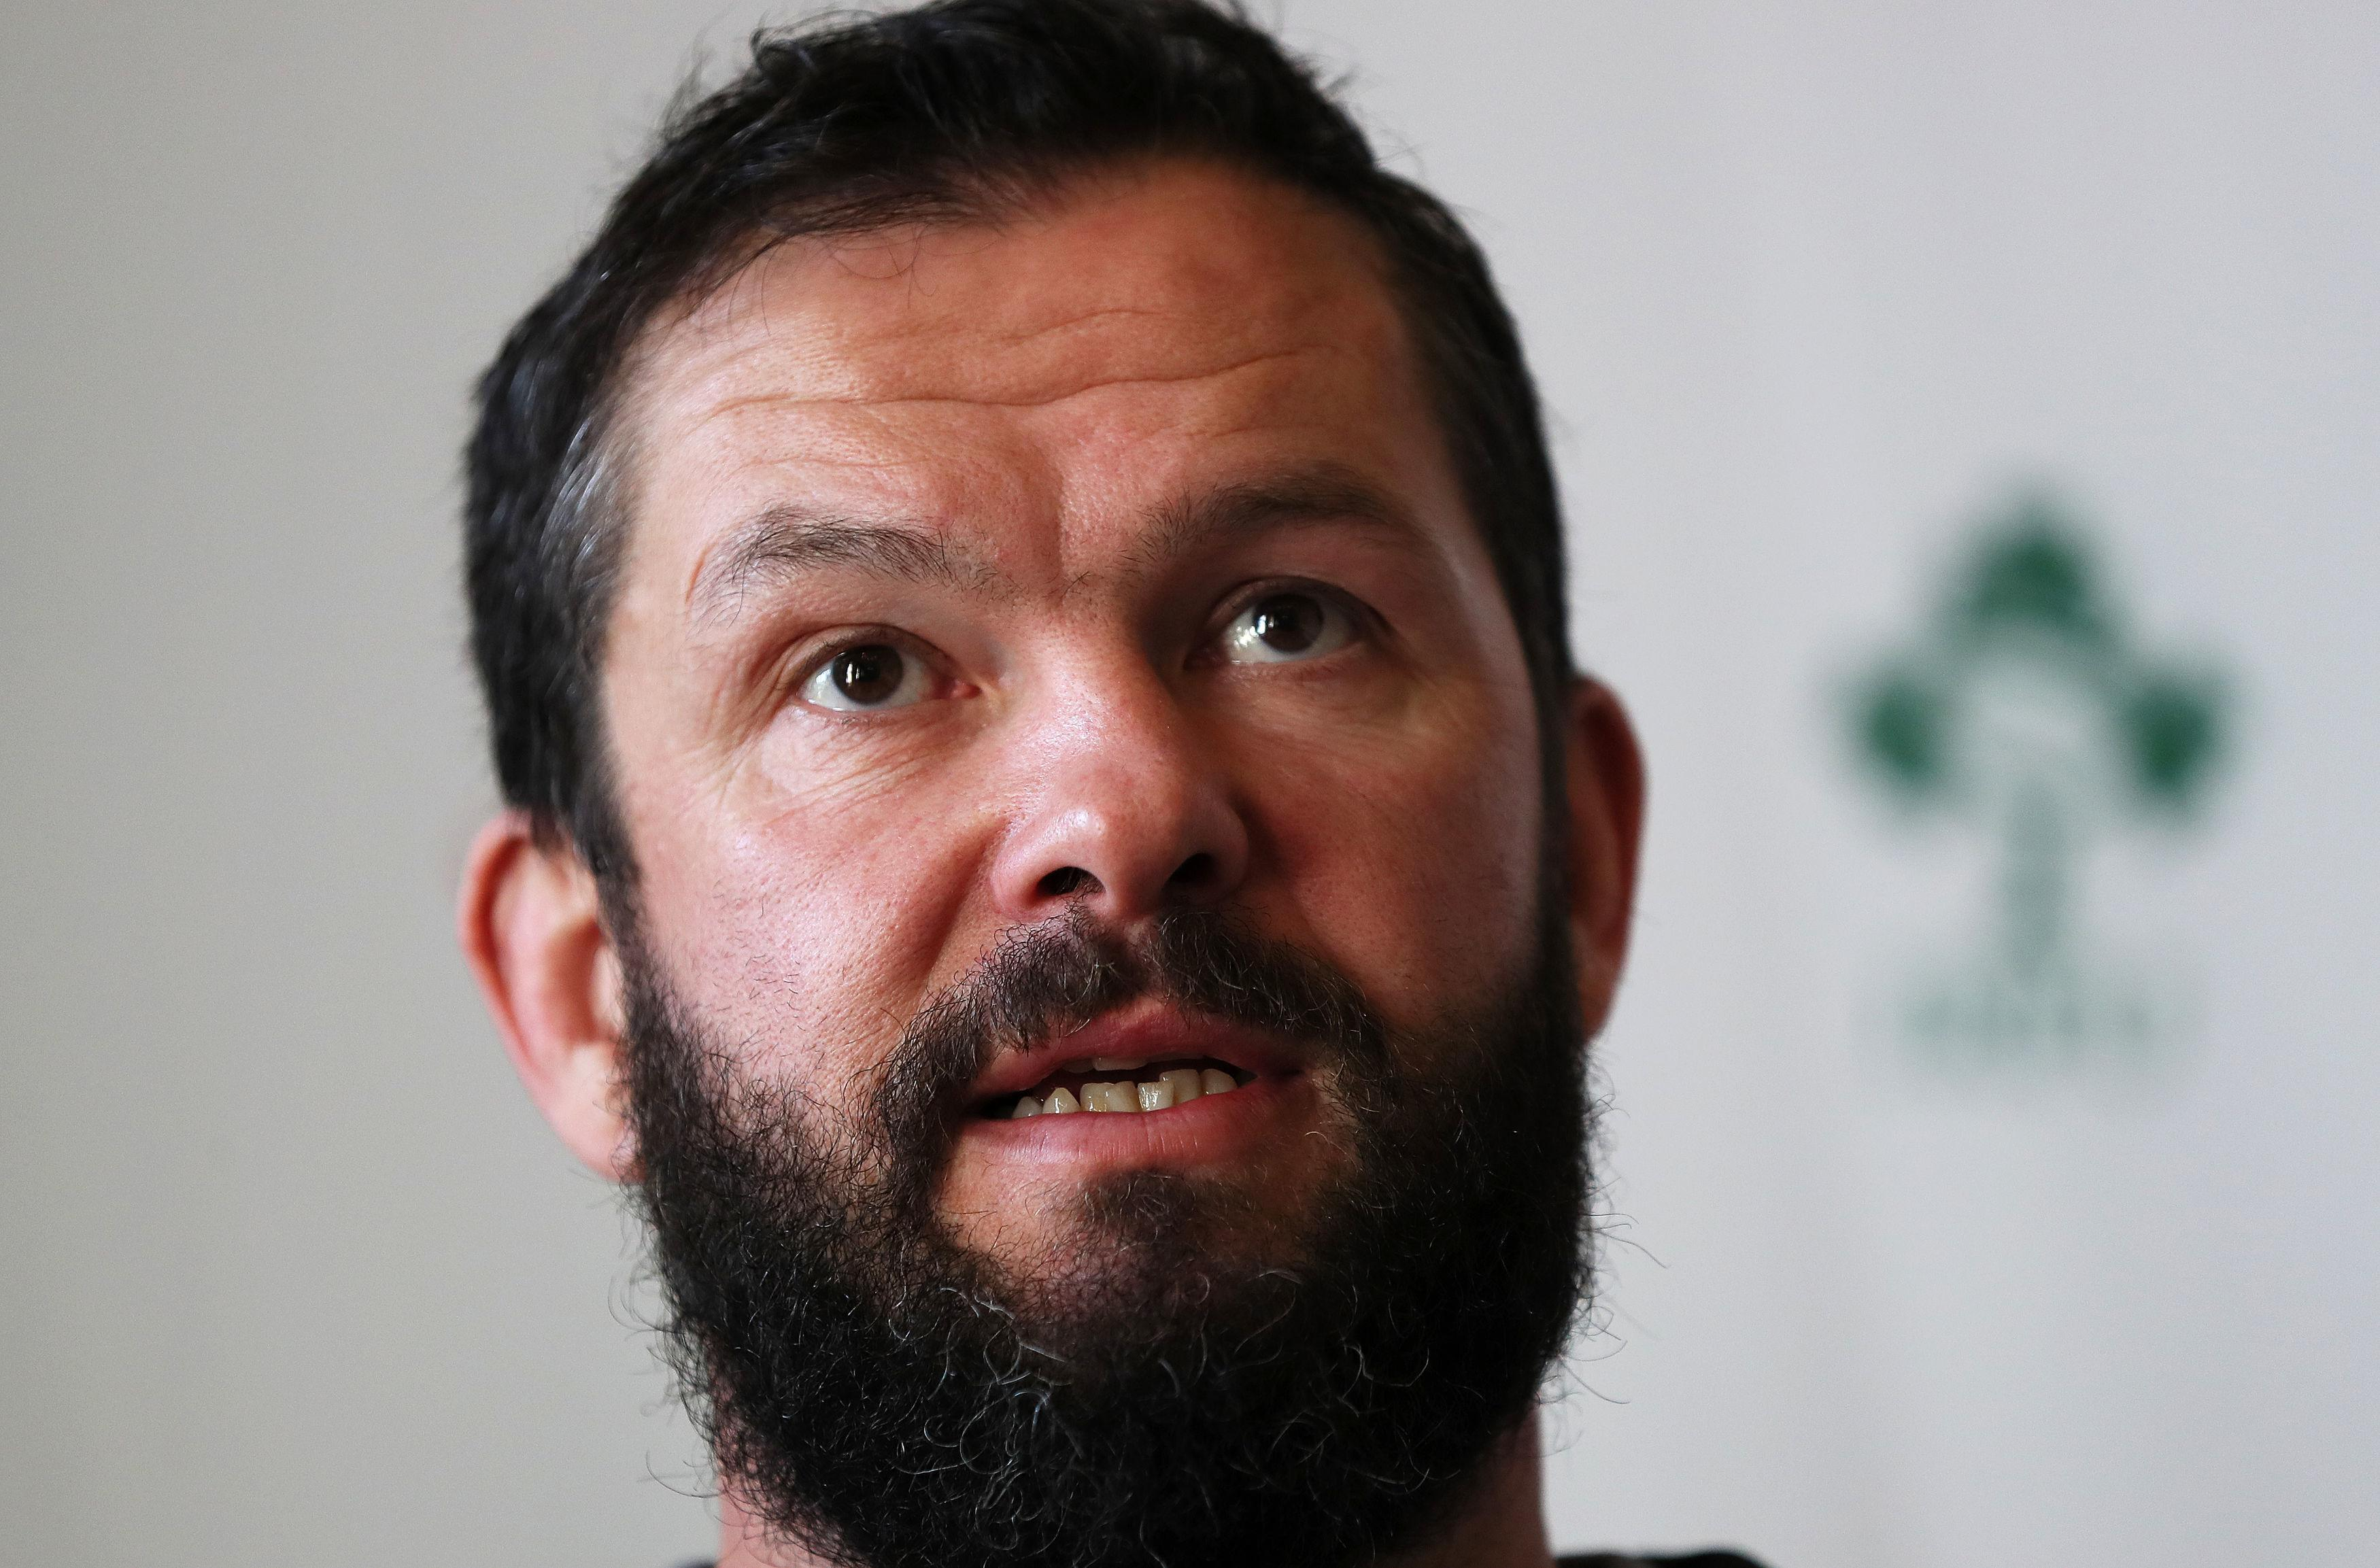 Andy Farrell is the man who will replace Joe Schmidt after the World Cup